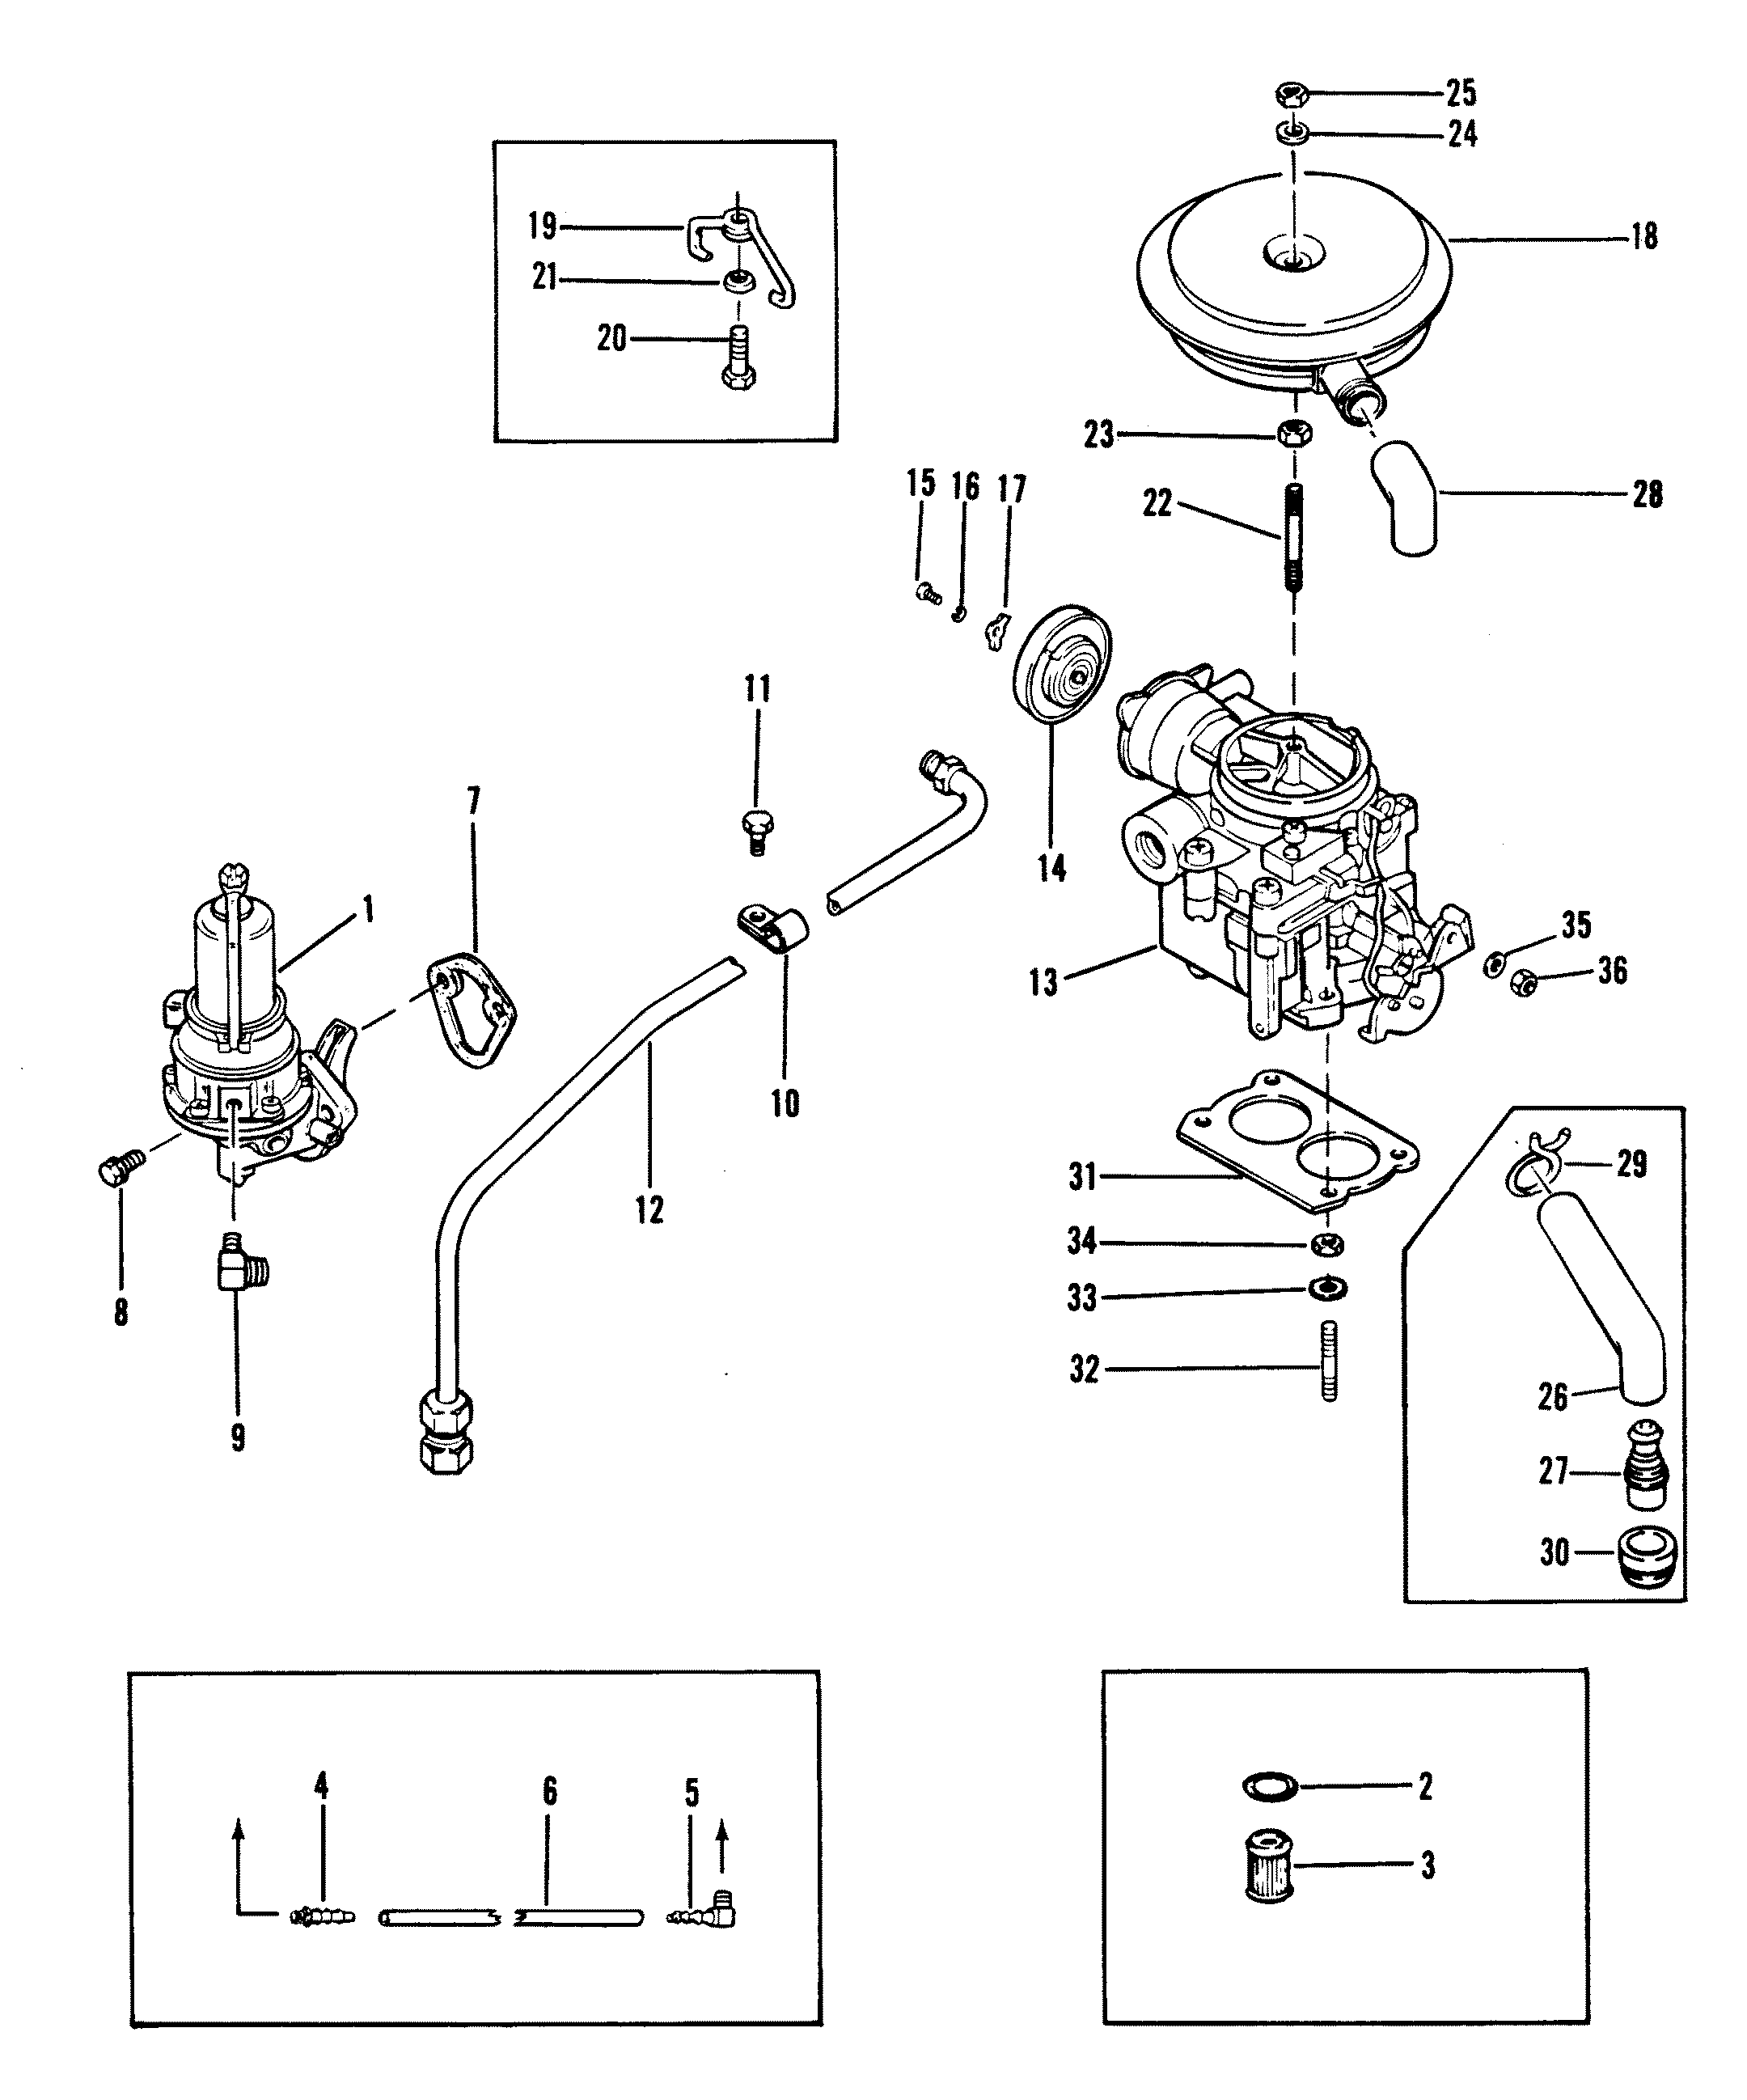 120 Hp Mercruiser Engine Diagram